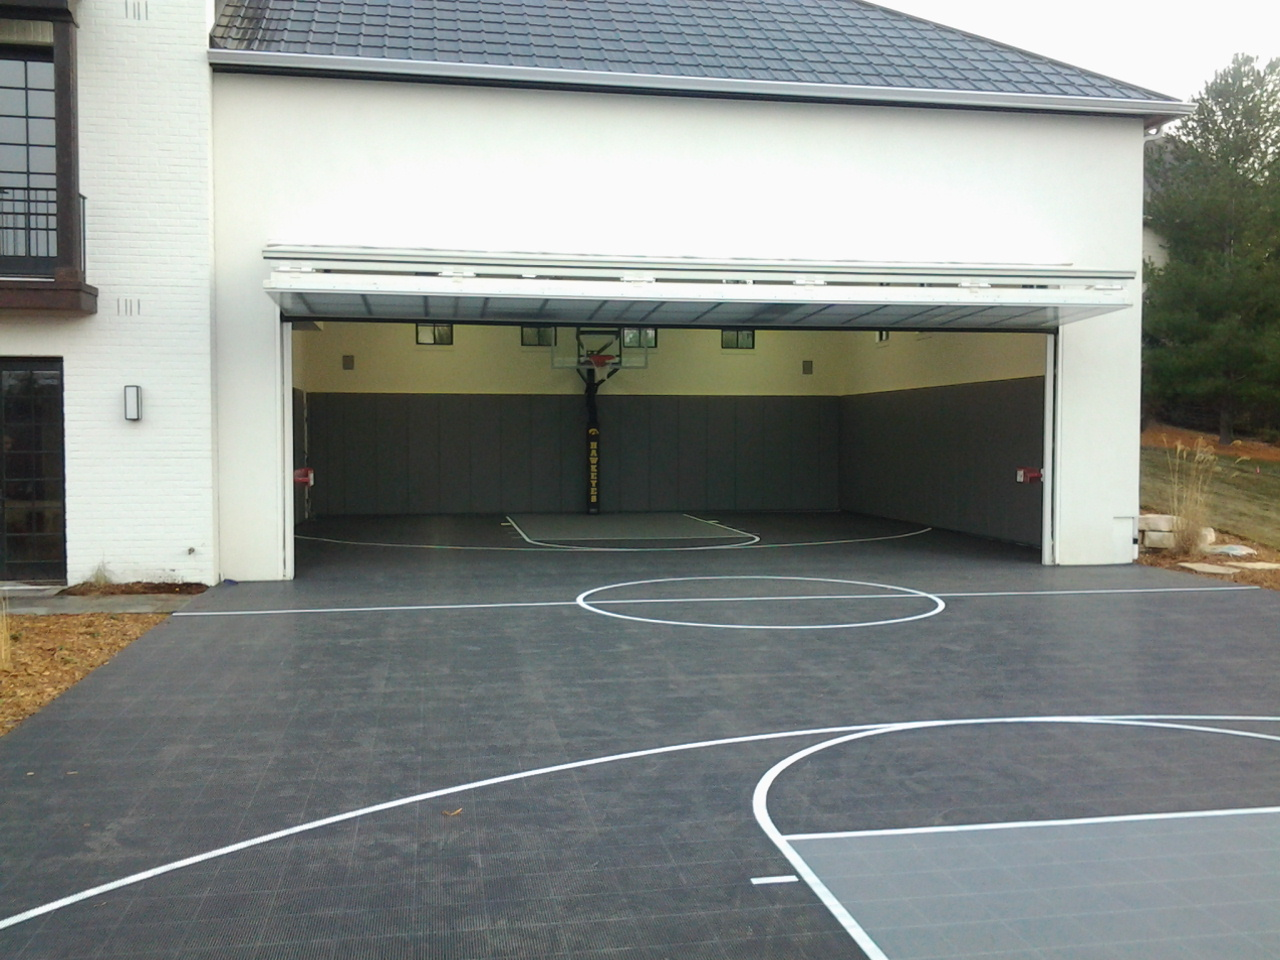 Gym flooring amazon backyard indoor and outdoor for Basketball hoop inside garage